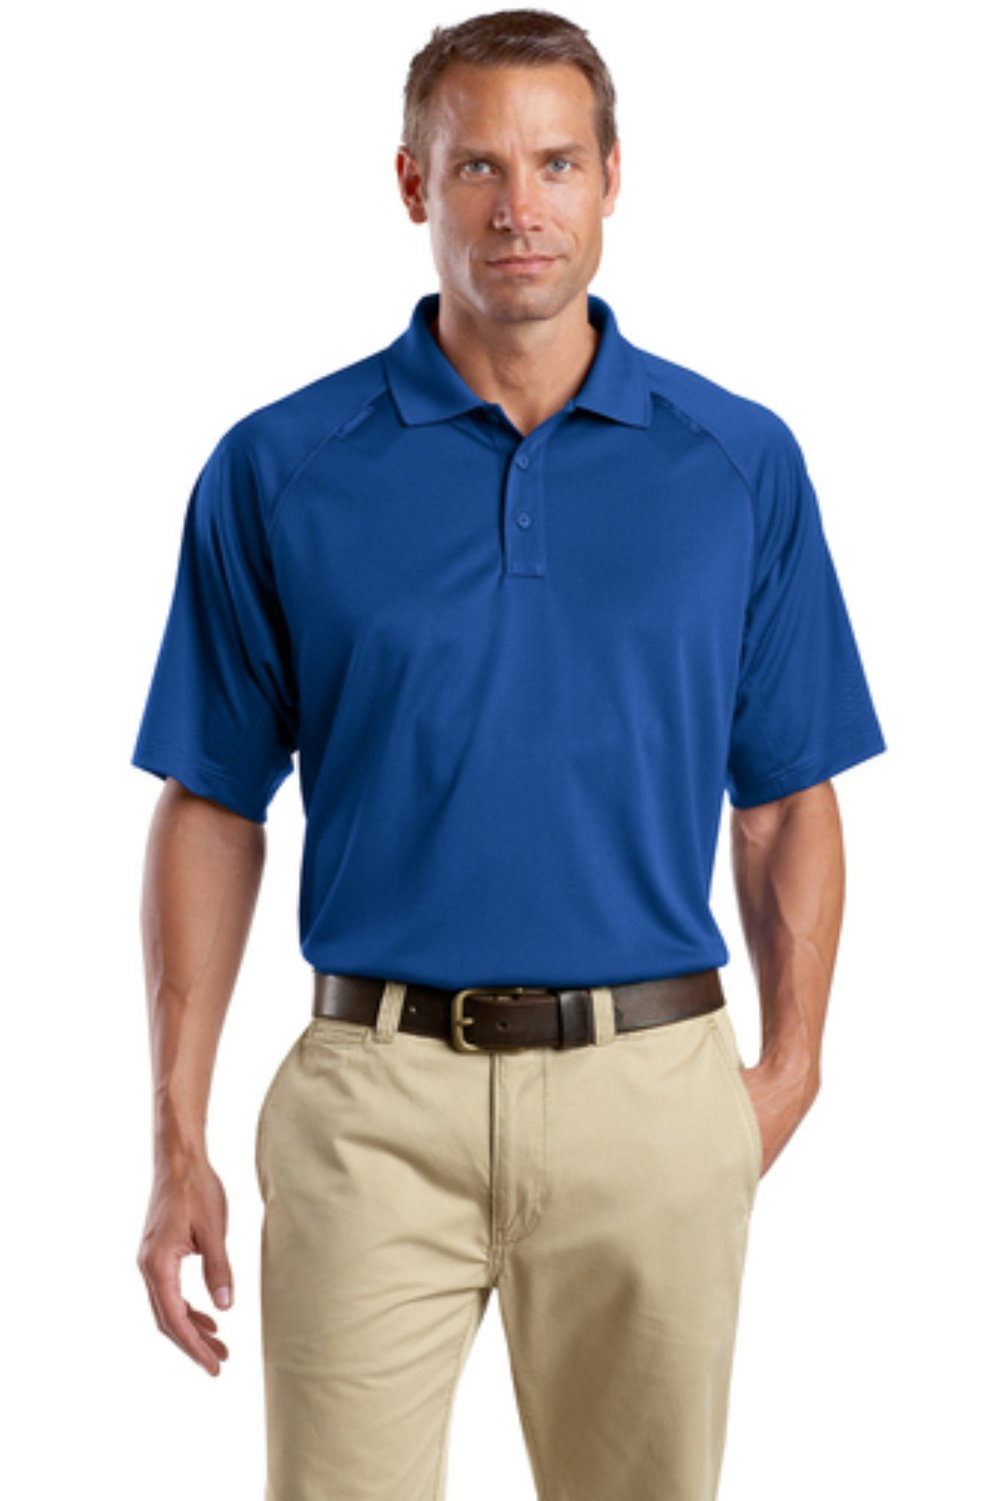 CS410  Corner Stone Performance Polo.  $29.00